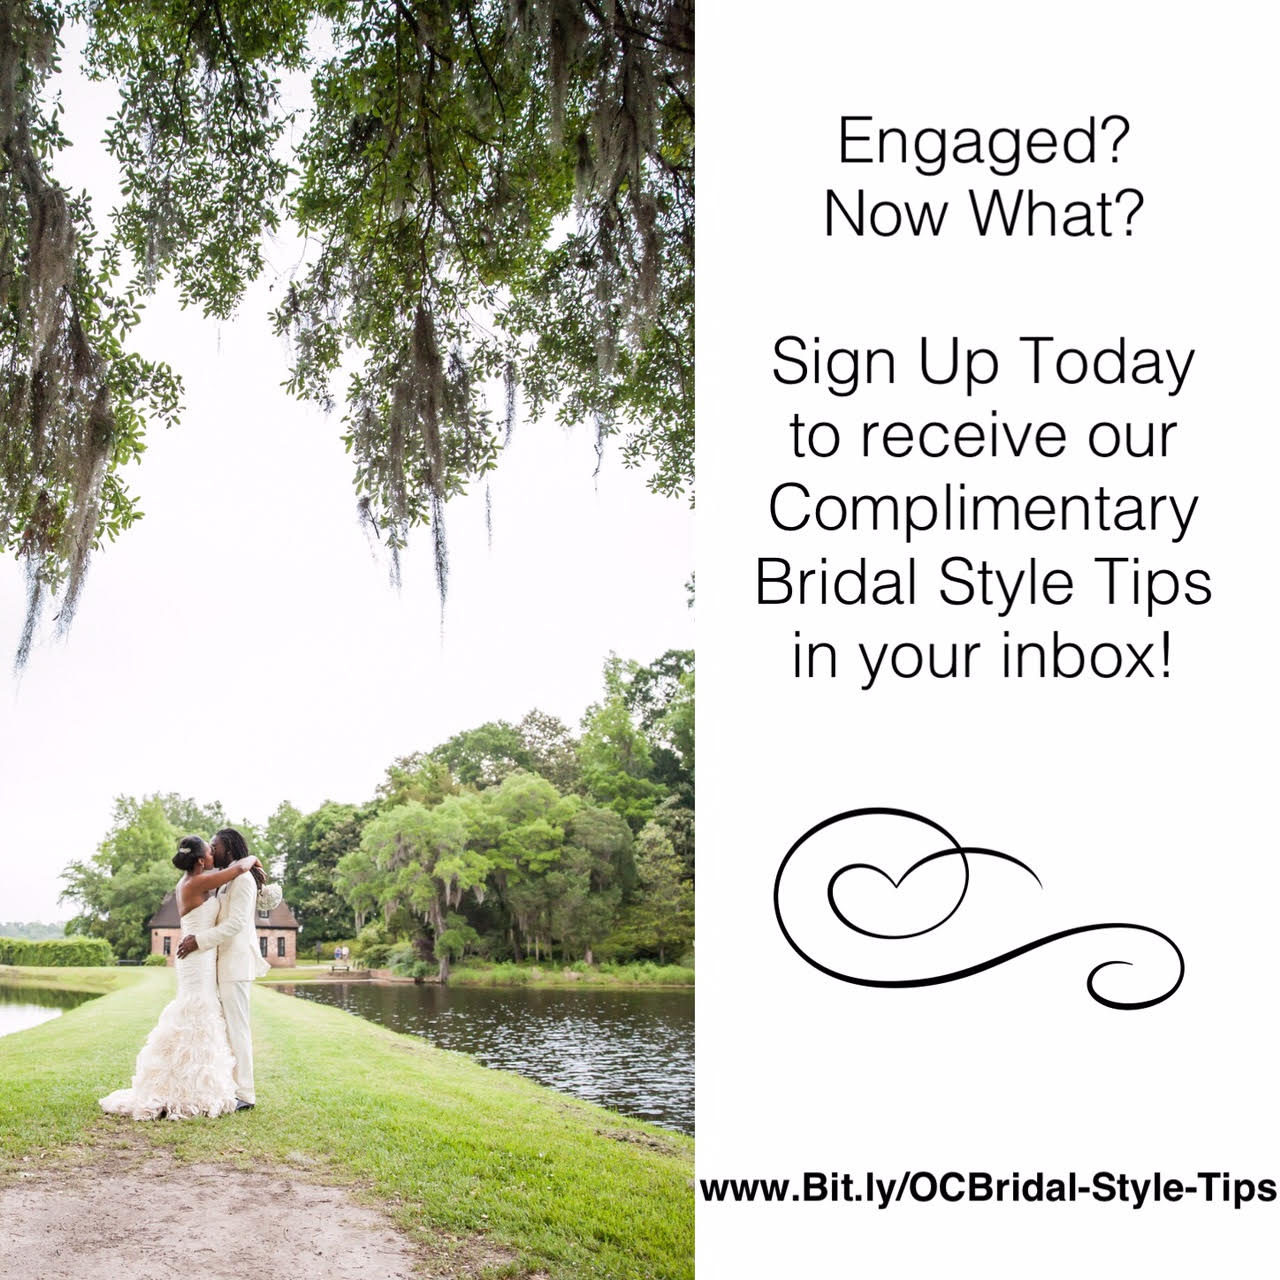 Complimentary Bridal Style Tips